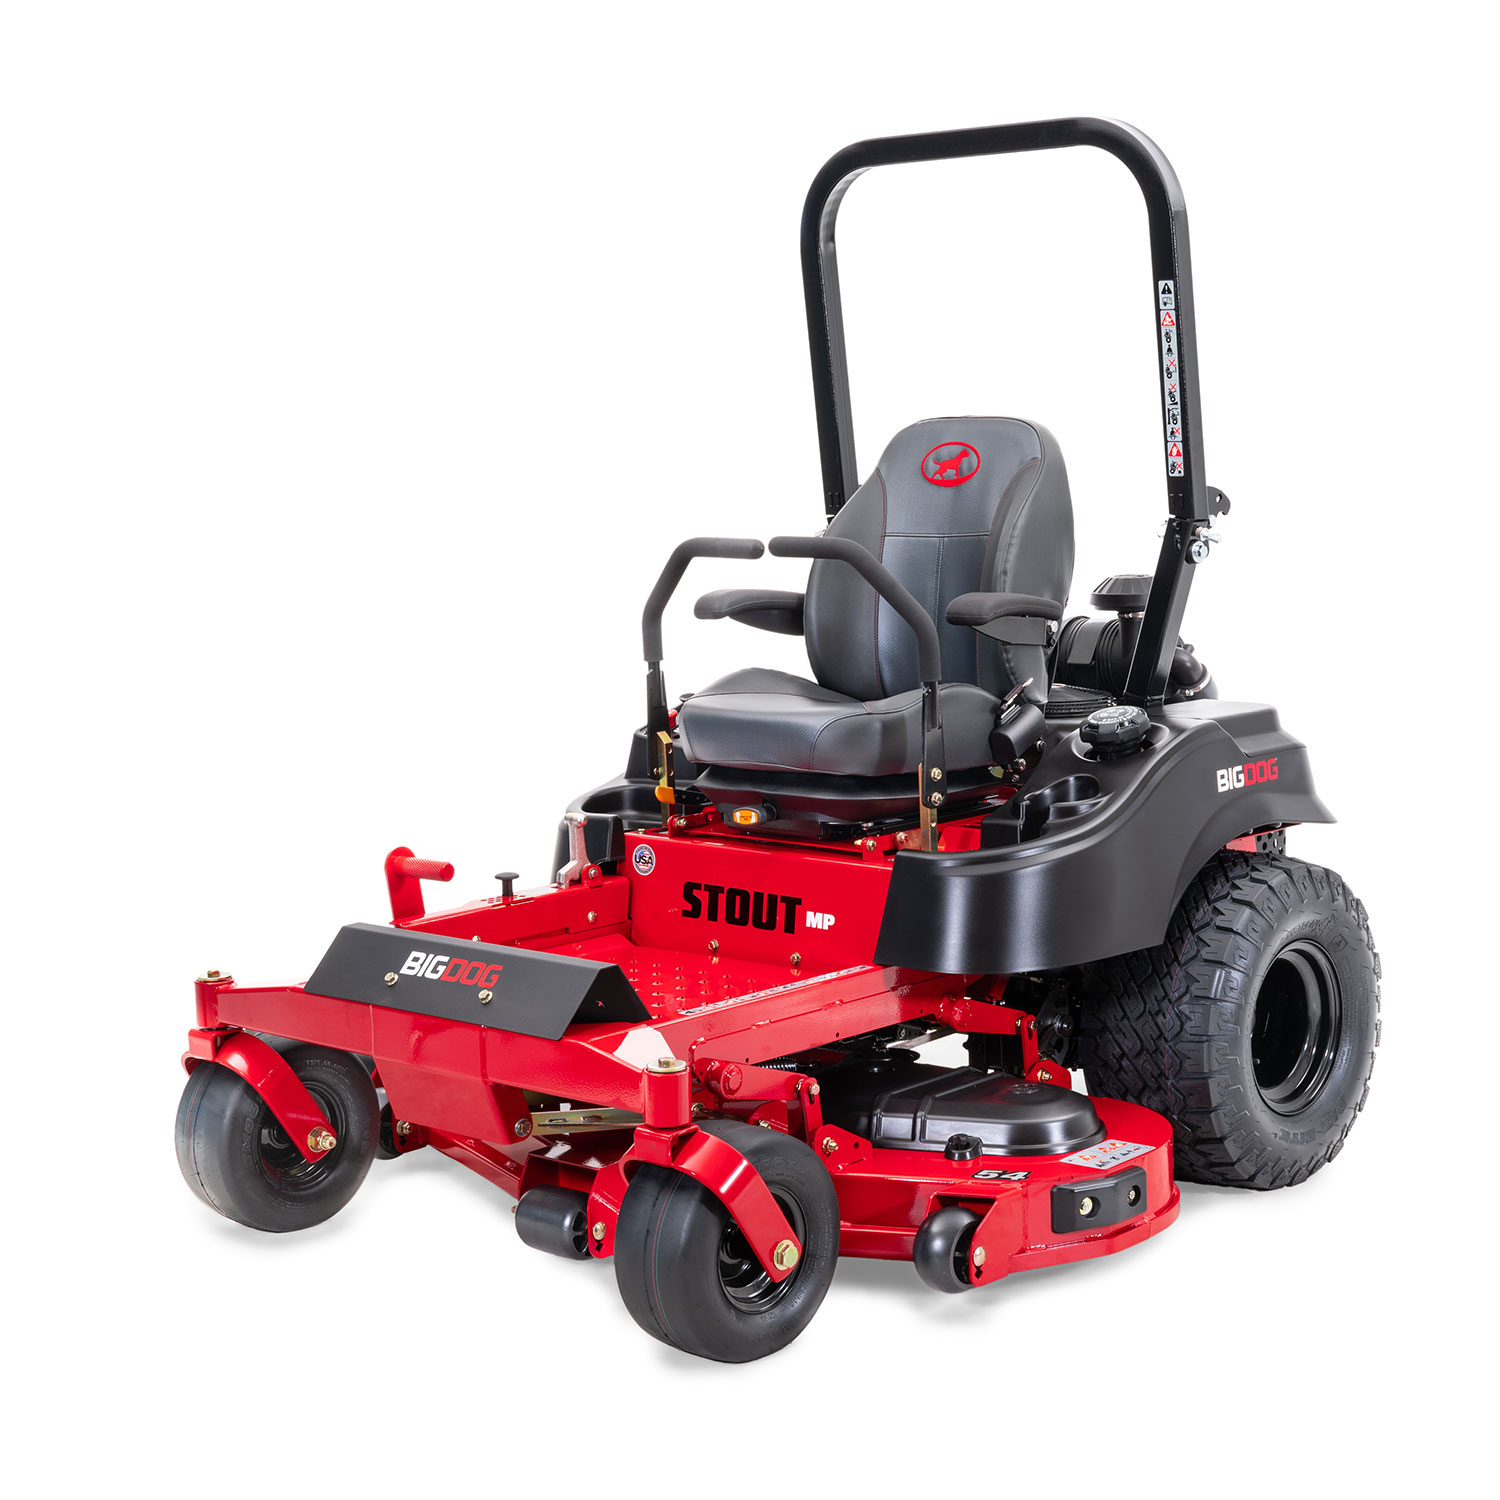 Image of the front of a red riding mower